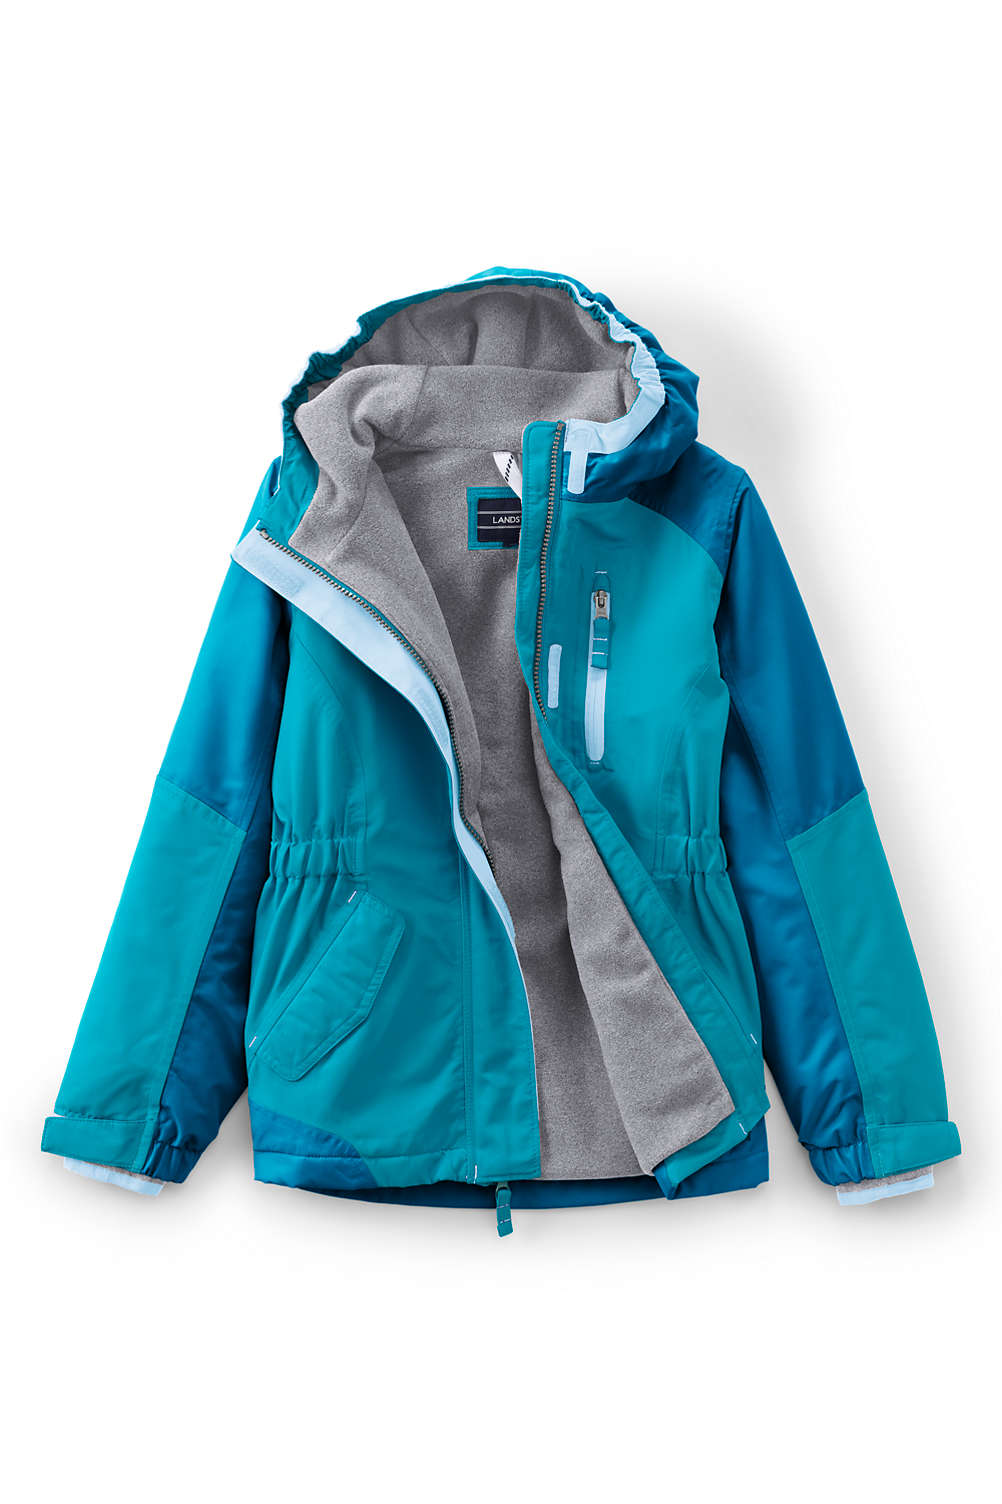 e903231c8 Girls Squall Waterproof Winter Jacket from Lands' End